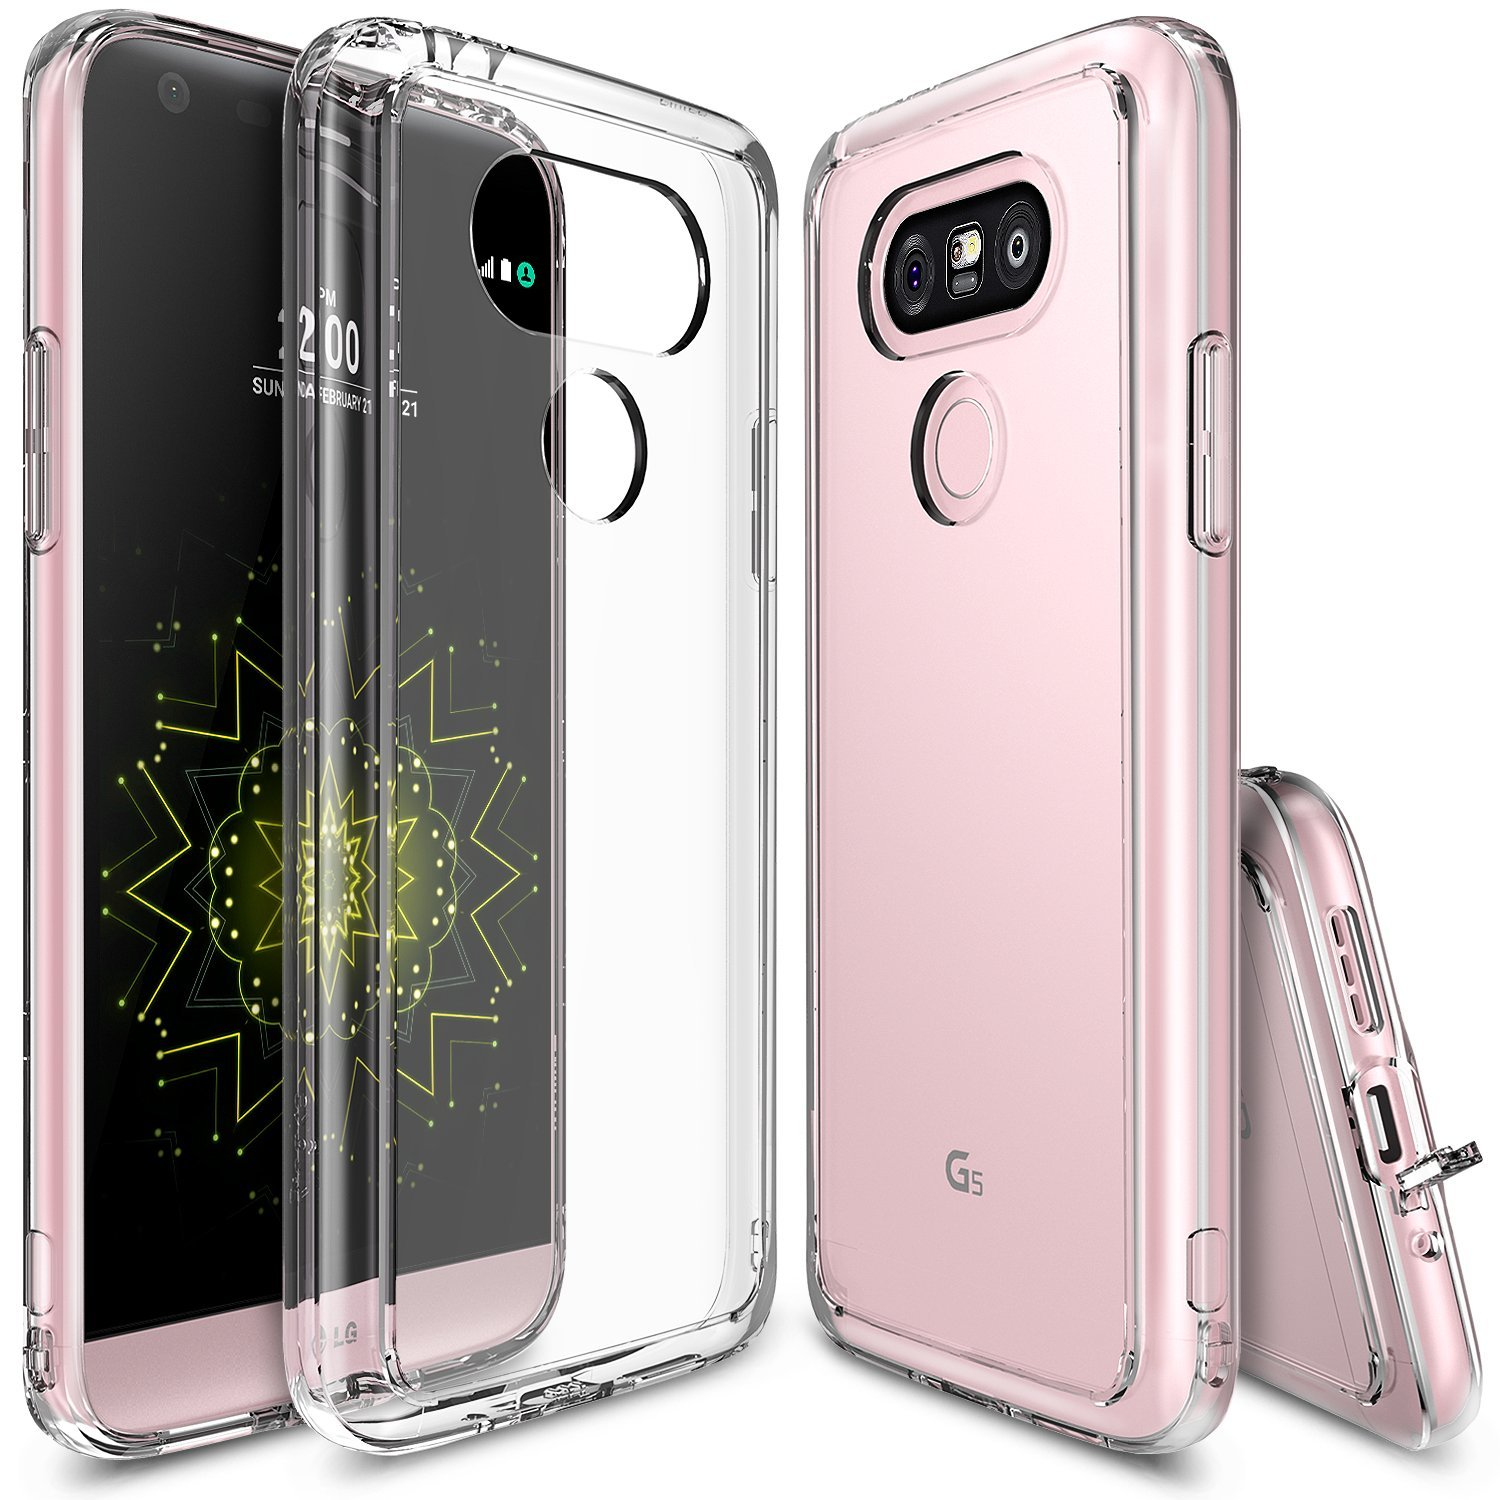 Ringke Fusion Case for LG G5 - Clear